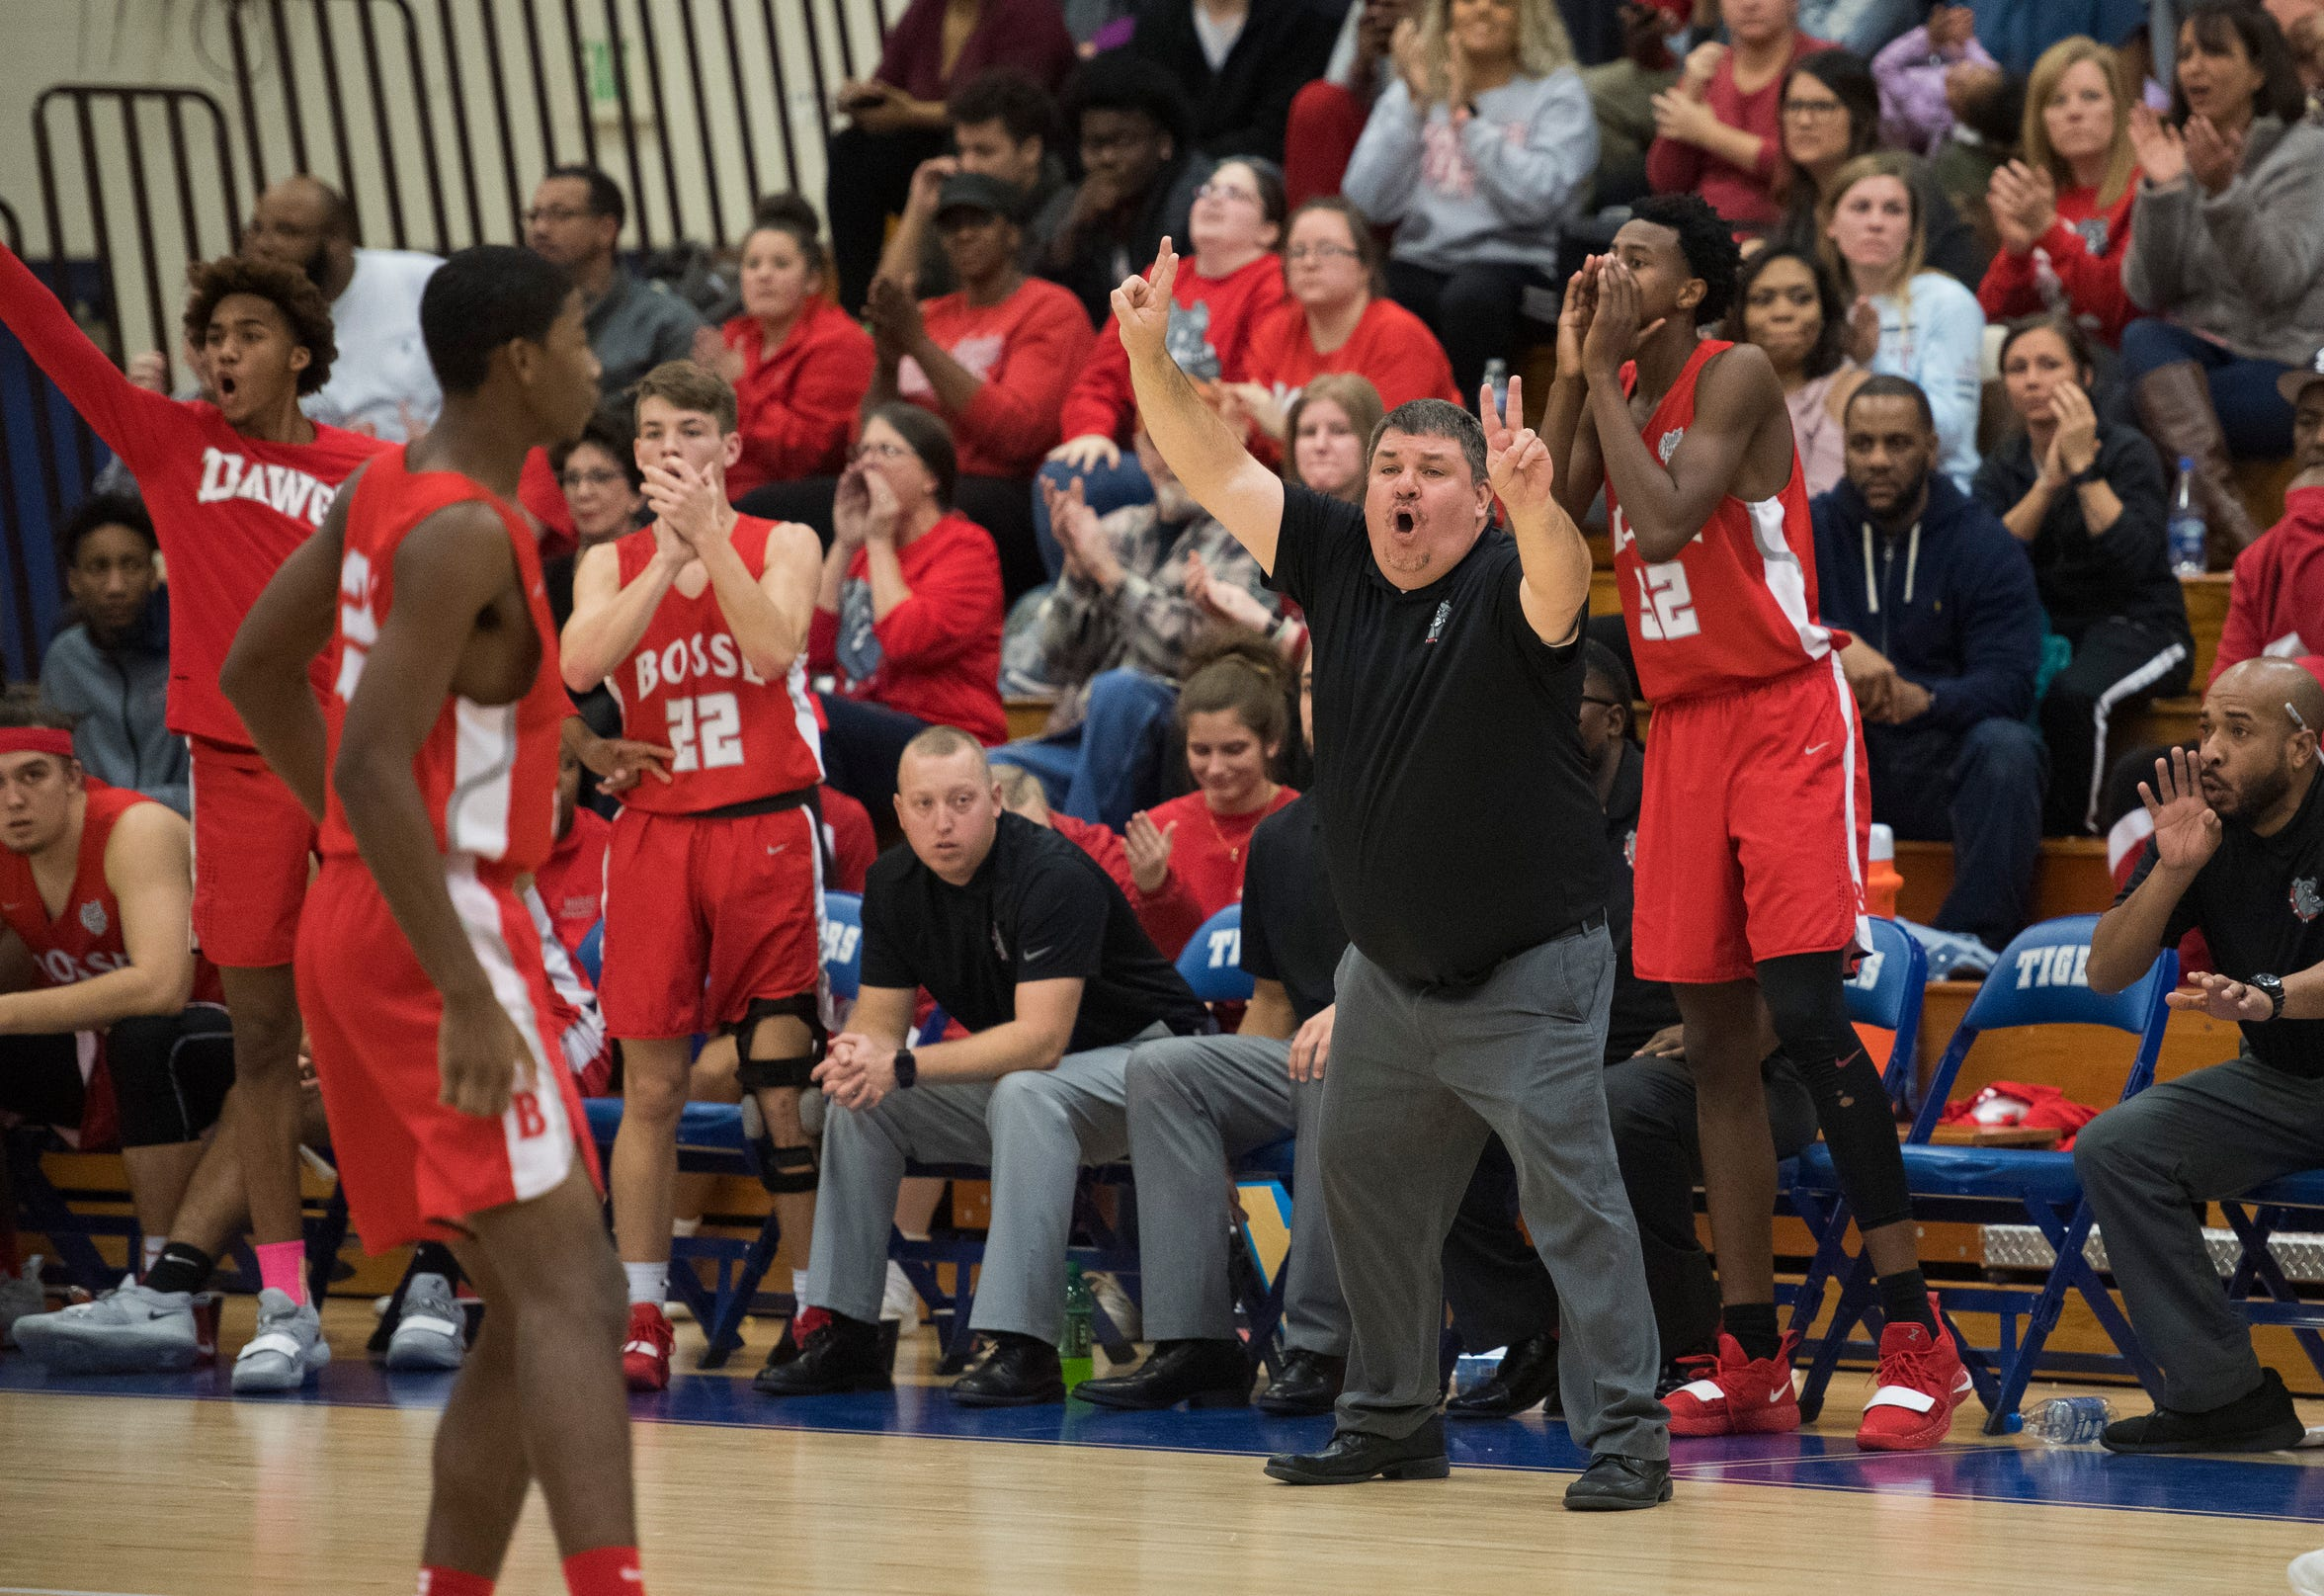 Bosse Head Coach Shane Burkhart calls a play during the  Bosse vs Memorial game Tuesday, Dec. 11, 2018.